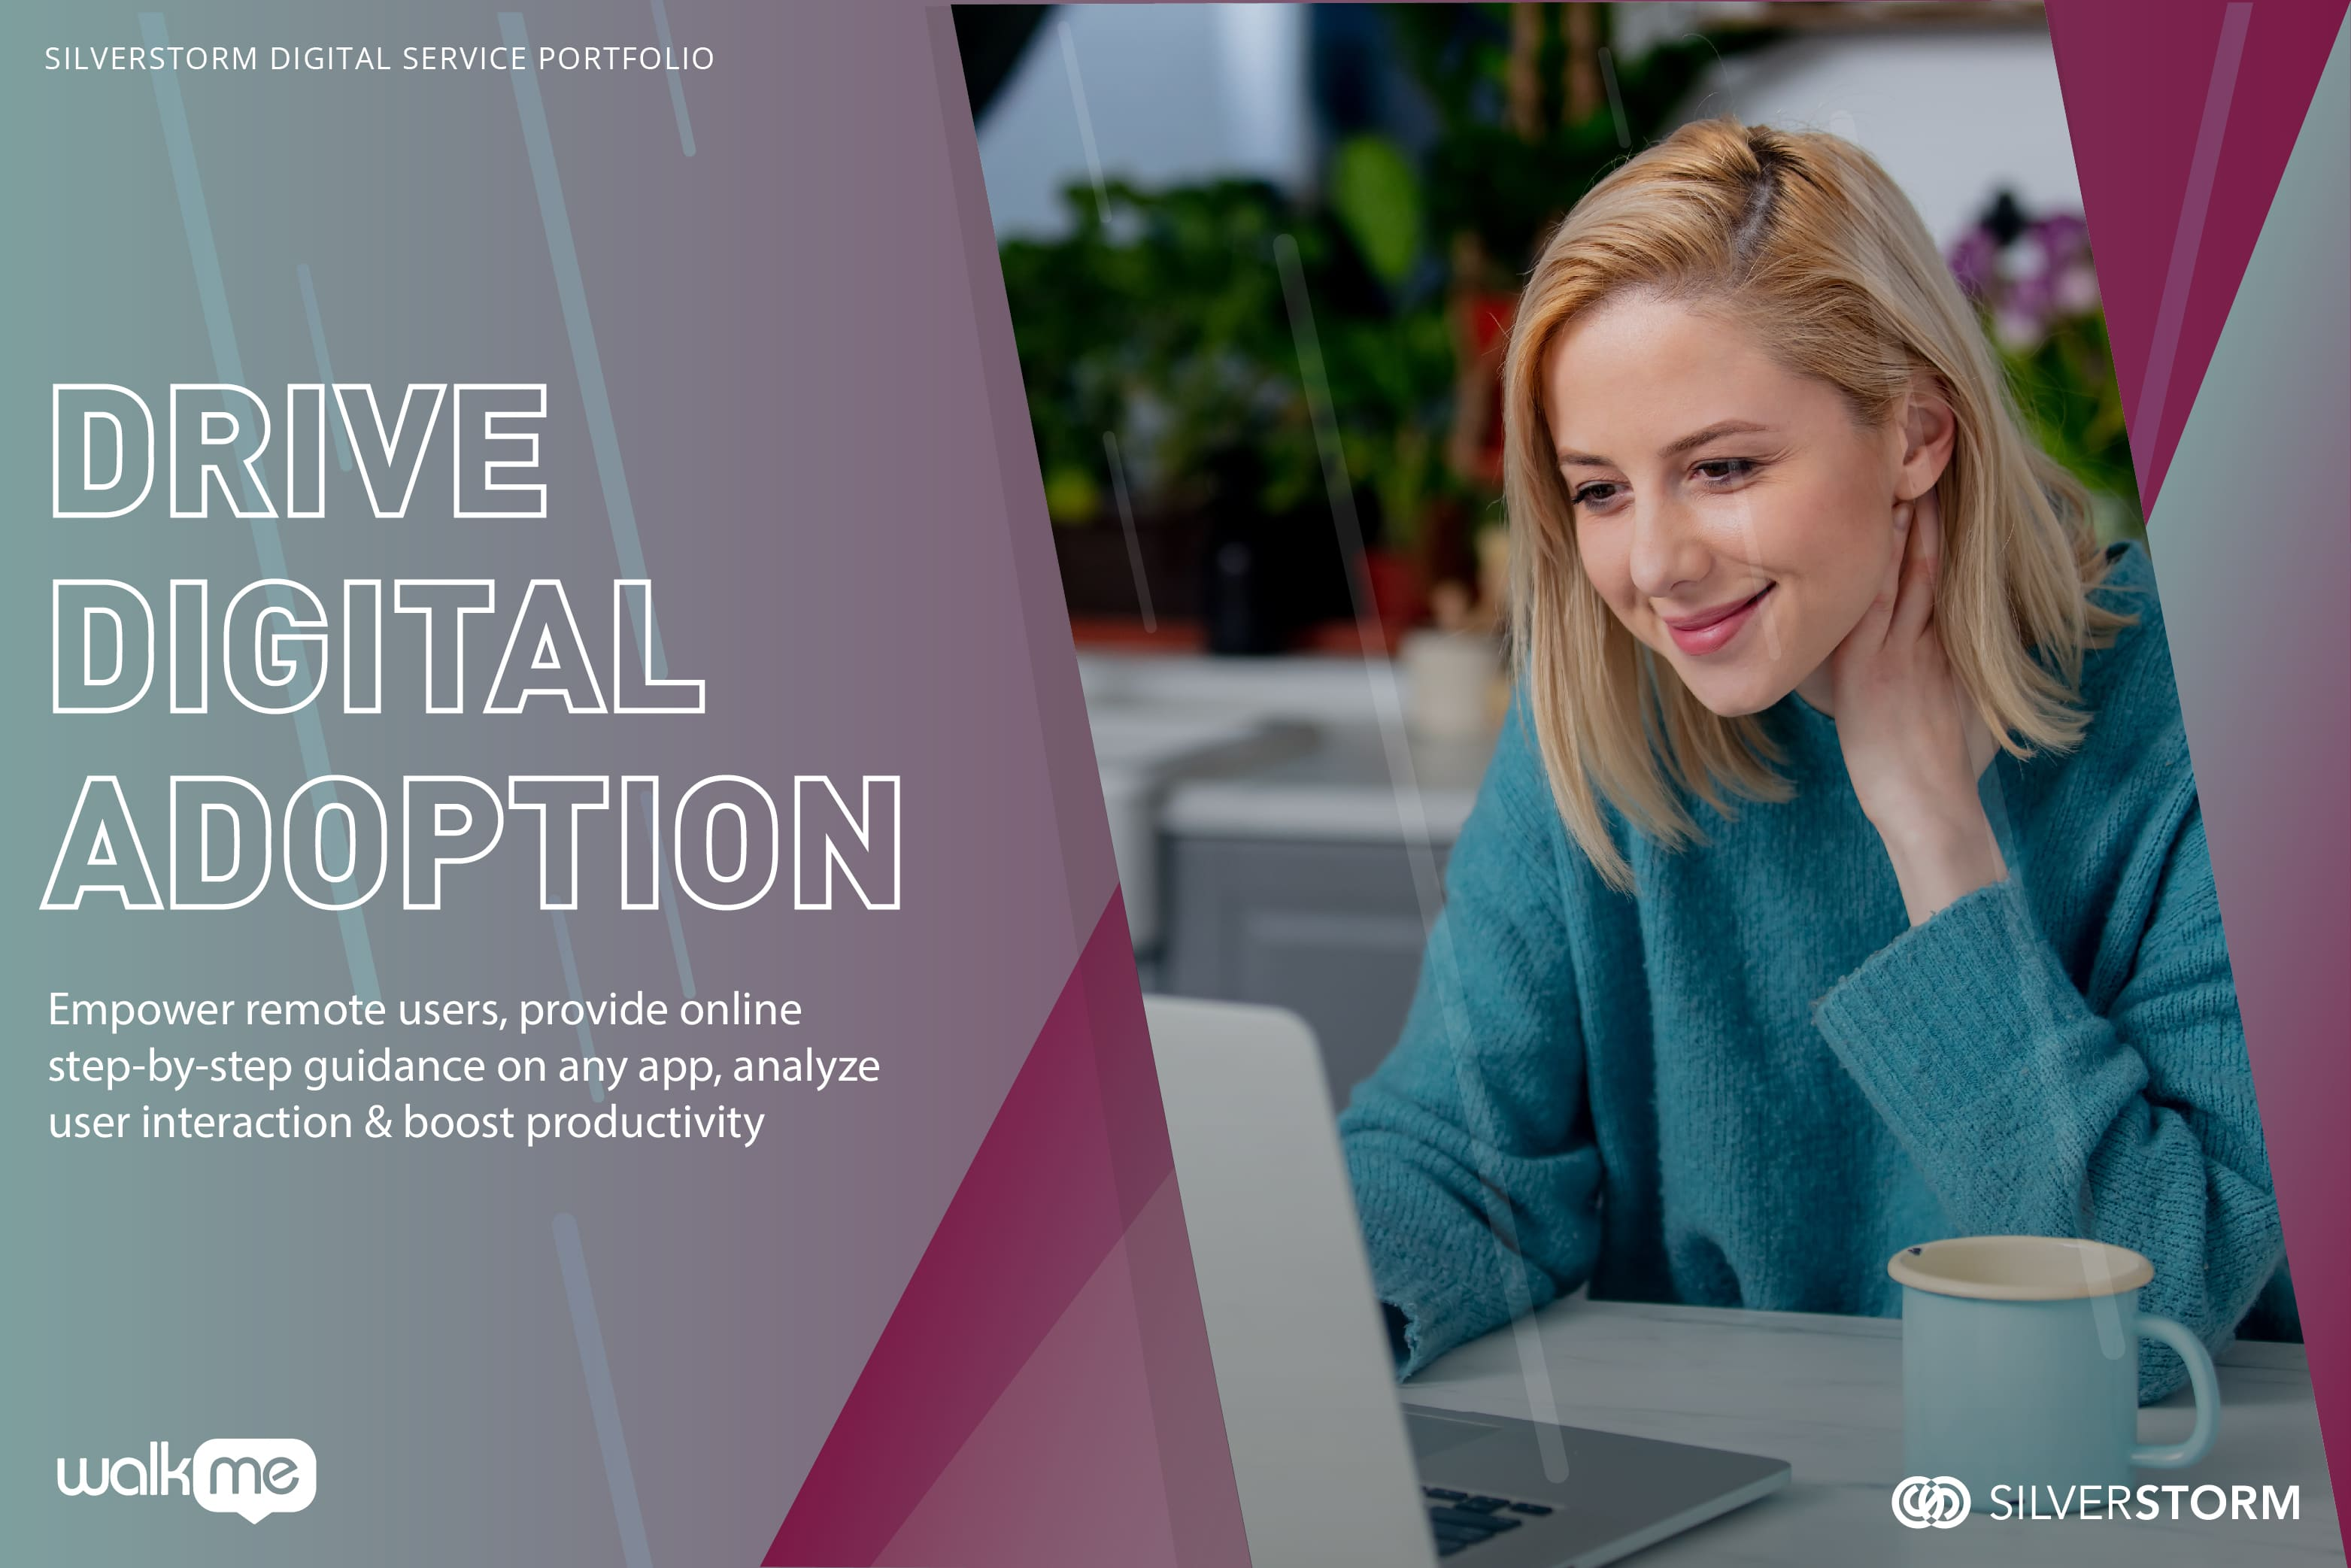 Drive Digital Adoption